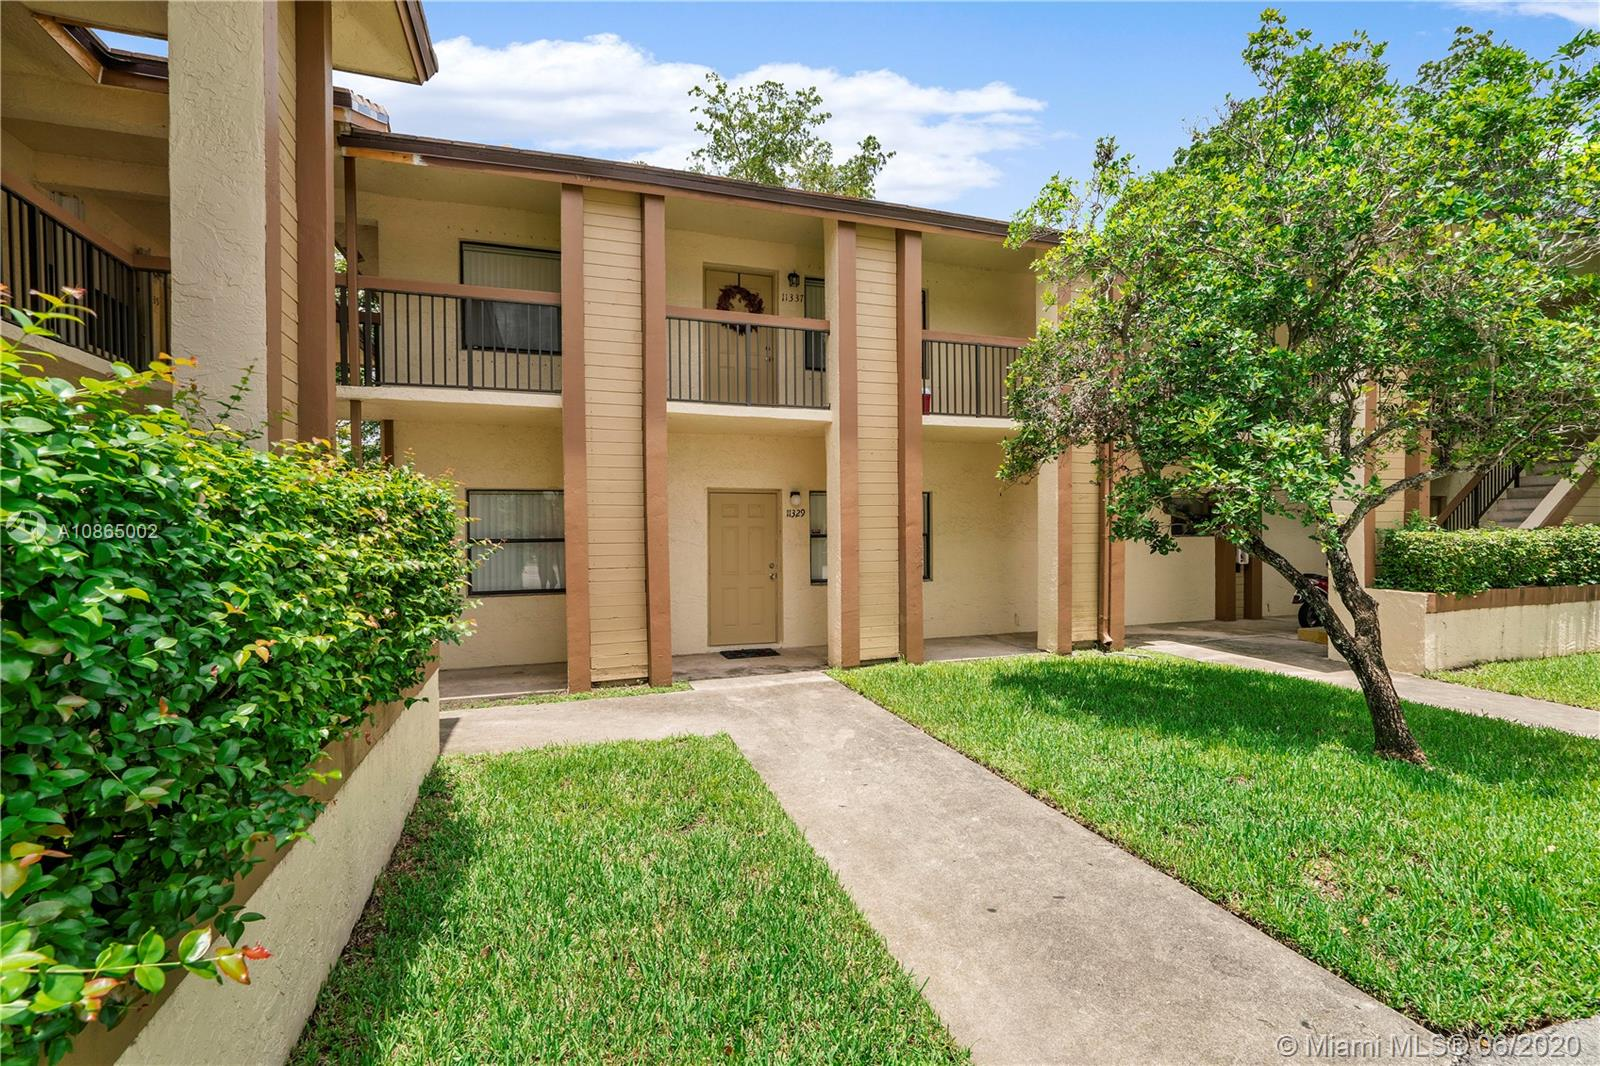 INVESTORS !! Rent Immediately. This 2 Bed 2 Bath Condo Is Located In The Heart Of West Coral Springs. Kitchen Features Stainless Steel Appliances, Plenty Of Wood Cabinets, Breakfast Bar, Pantry And More! Open Layout With Dining/Living Room Leading To Screened Balcony That Features Extra Storage Room. Spacious Master Bedroom Features Natural Lighting With Walk In Closet. Upgraded Master Bathroom Features Spacious Tiled Shower, Custom Wood Vanity, Framed Mirror And Upgraded Lighting. 2nd Bathroom Features White Wood Vanity, Shower/Tub Combo. Stacked Washer And Dryer For Your Convenience. Community Pool And BBQ Area For Entertaining. Unit Is Currently Rented Until September, 2020. Association Installed BRAND NEW ROOF 2020. New Front Door in 2019. Building Exterior Freshly Painted In 2019.